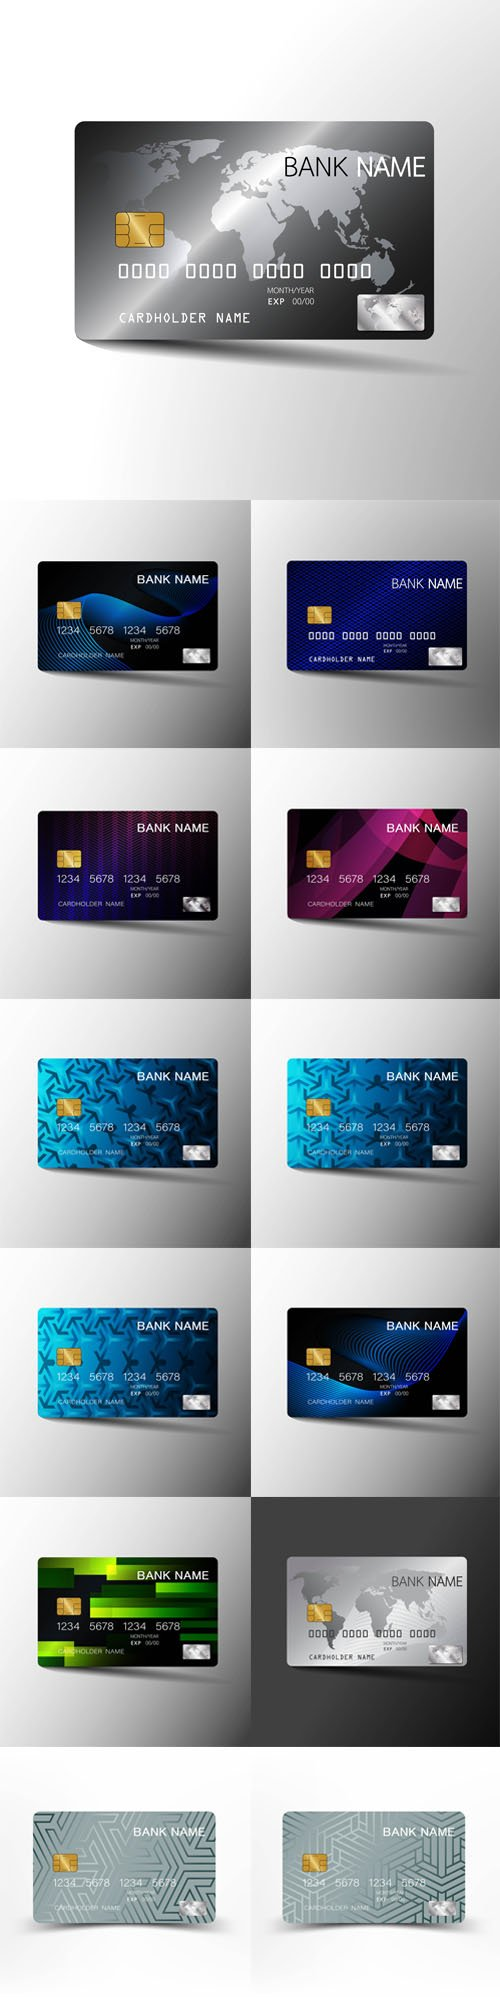 Credit Cards Vector Collection